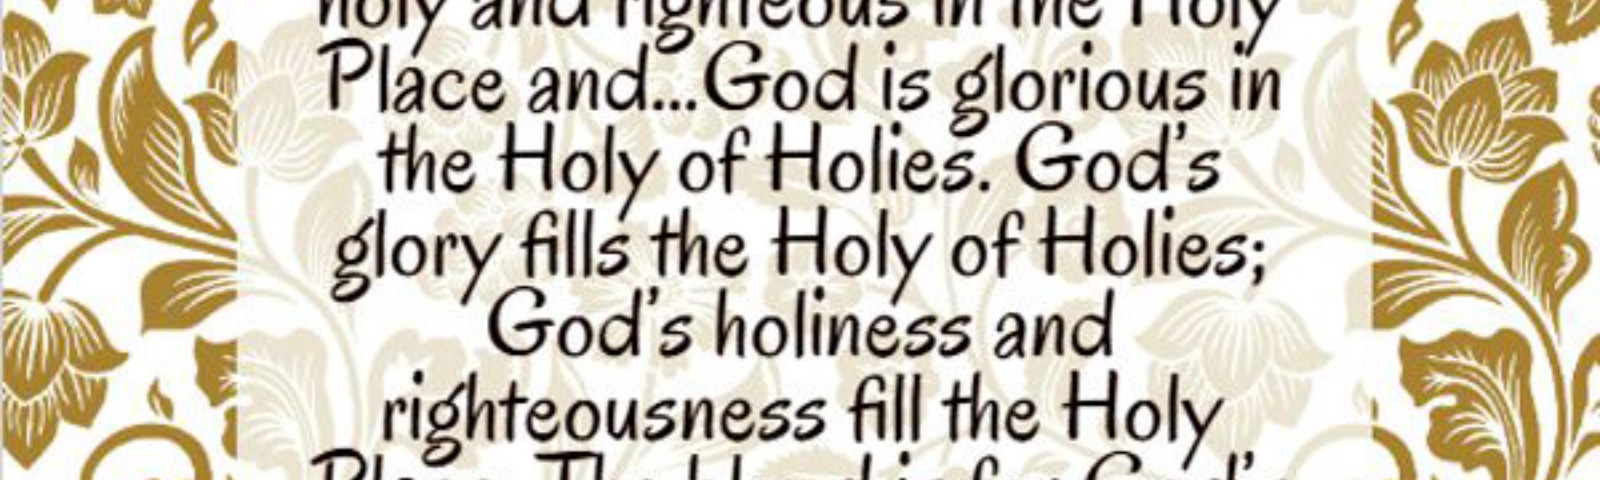 """In order to stand before the Lord, it is necessary """"to present to Me the fat and the blood"""" (Ezek. 44:15)....God is holy and righteous in the Holy Place and...God is glorious in the Holy of Holies. God's glory fills the Holy of Holies; God's holiness and righteousness fill the Holy Place. The blood is for God's holiness and righteousness, while the fat is for His glory. The fat is for God to gain something, while the blood deals with God's holiness and righteousness....The blood deals with sin....The fat is the richest and best part, and it satisfies God's heart. Thus, it is for God's glory. Watchman Nee"""